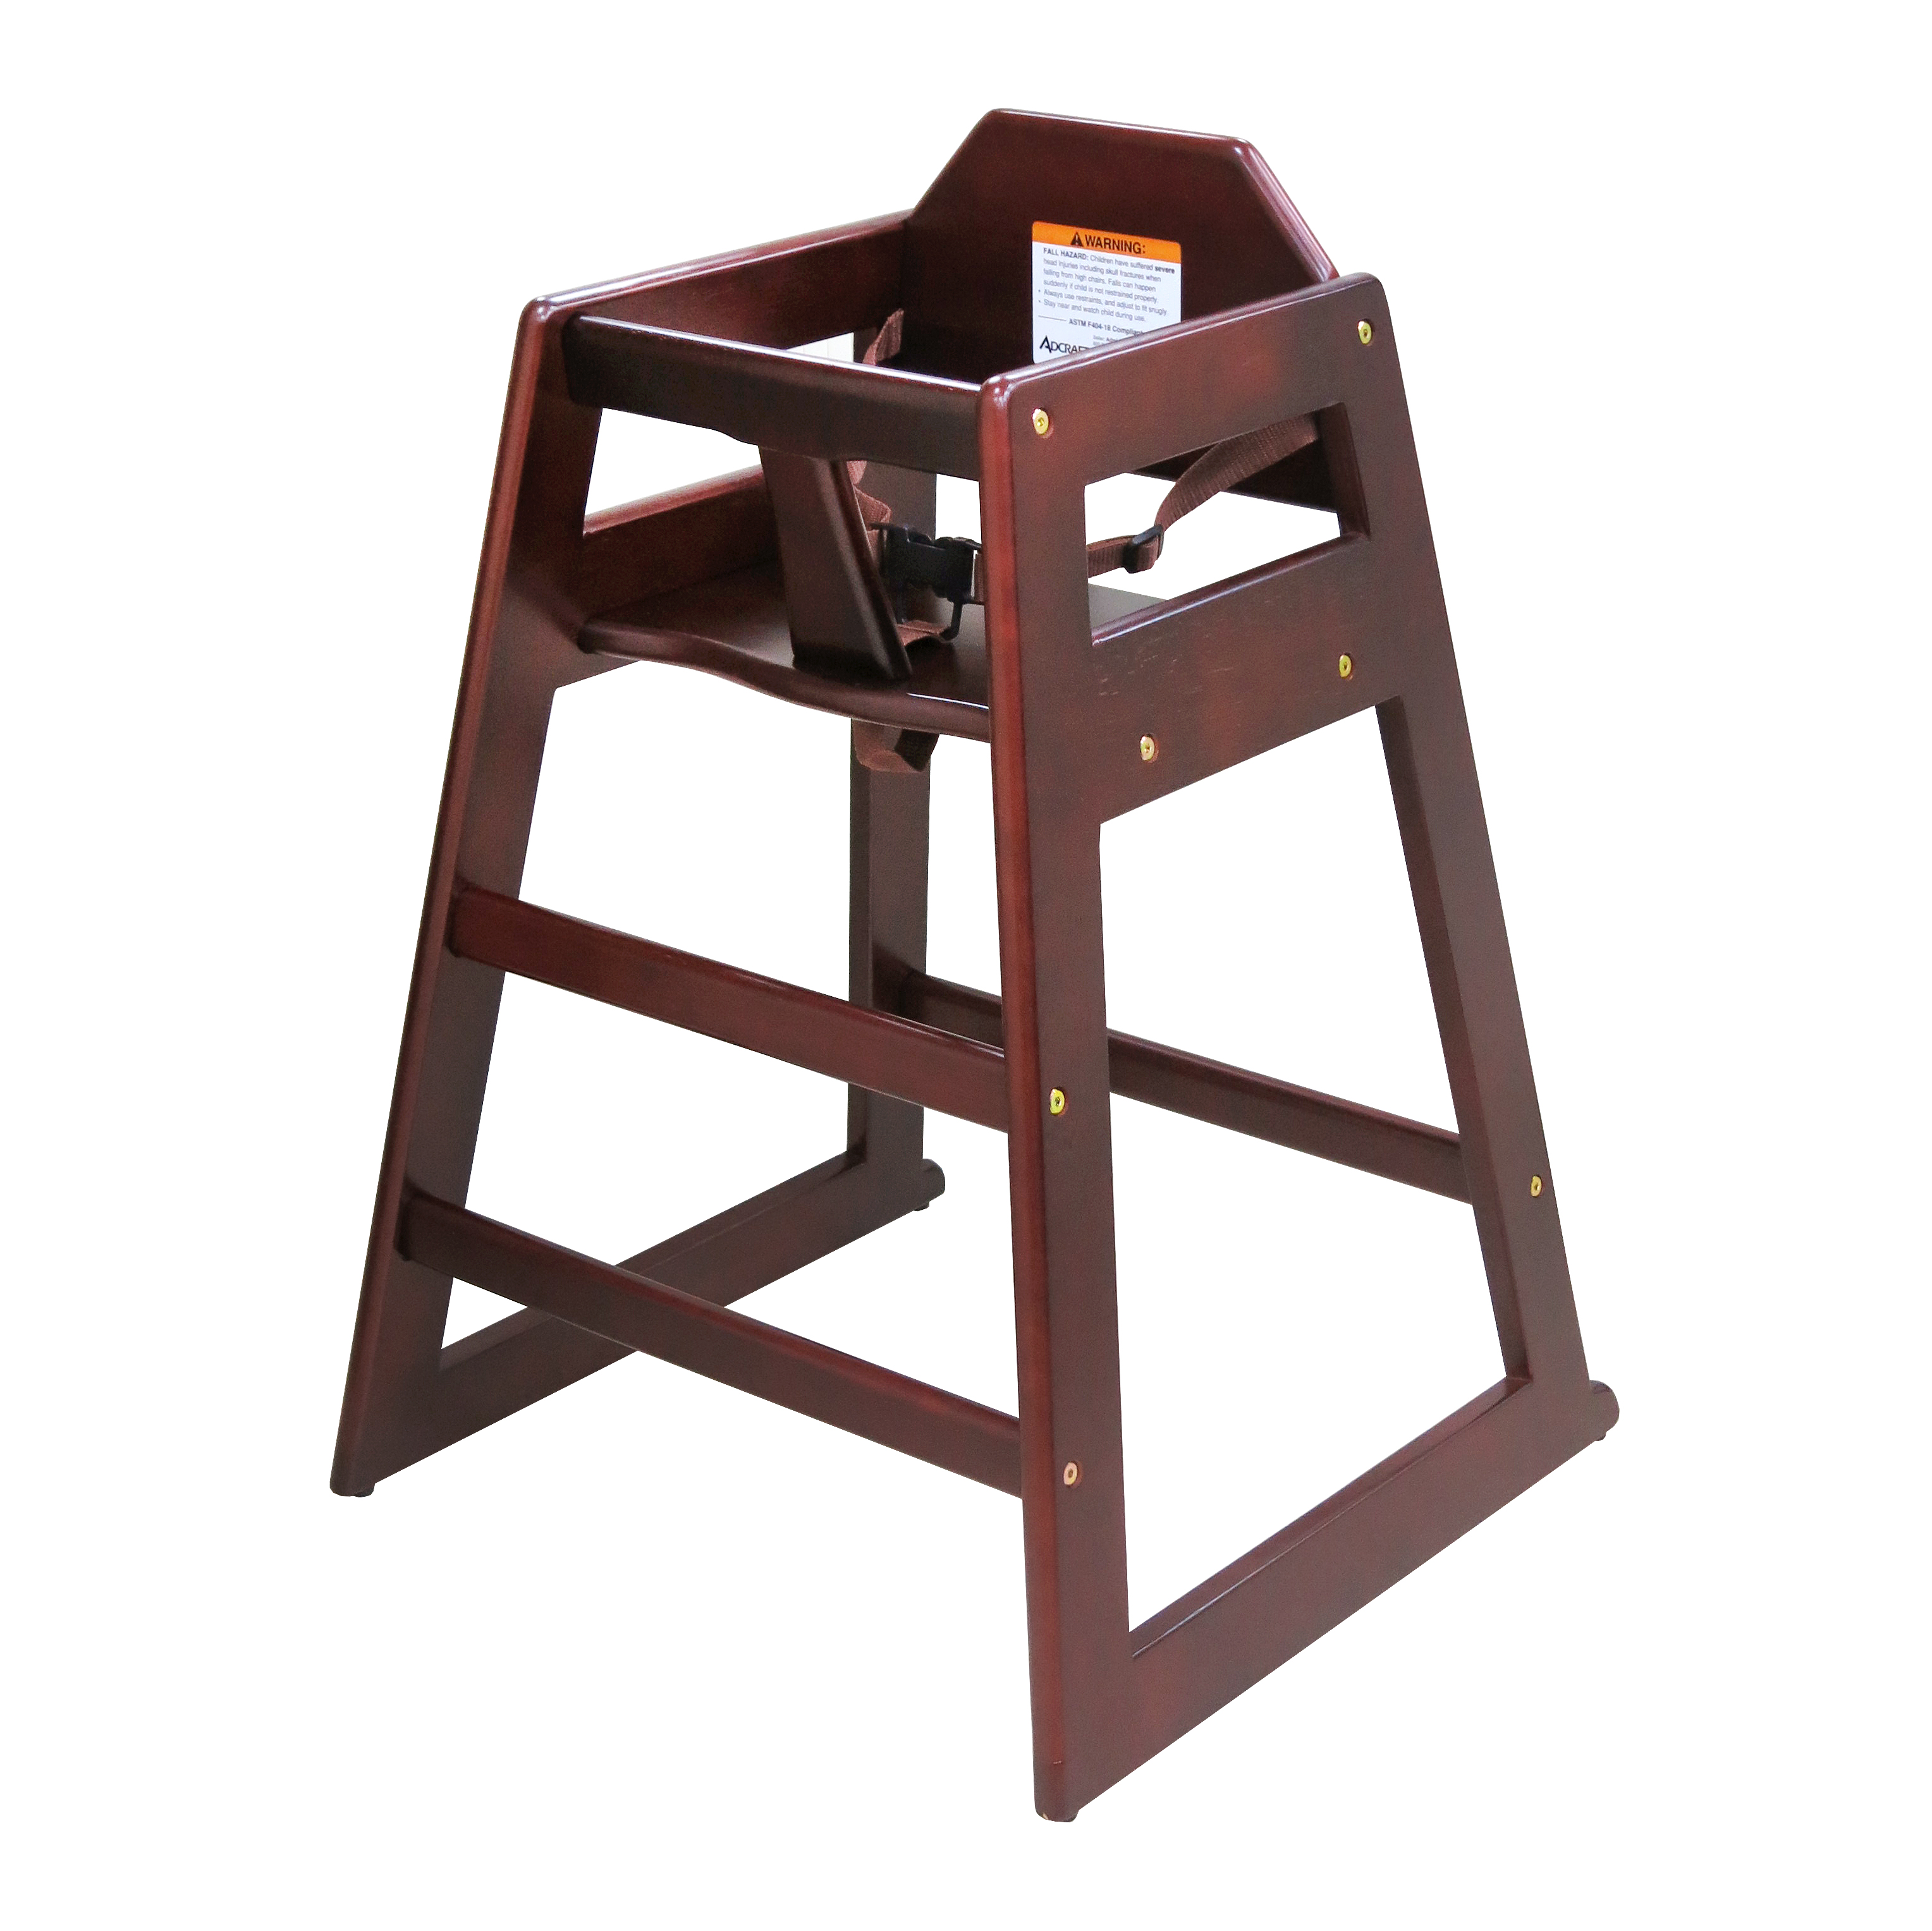 Admiral Craft HCW-5KD high chair, wood